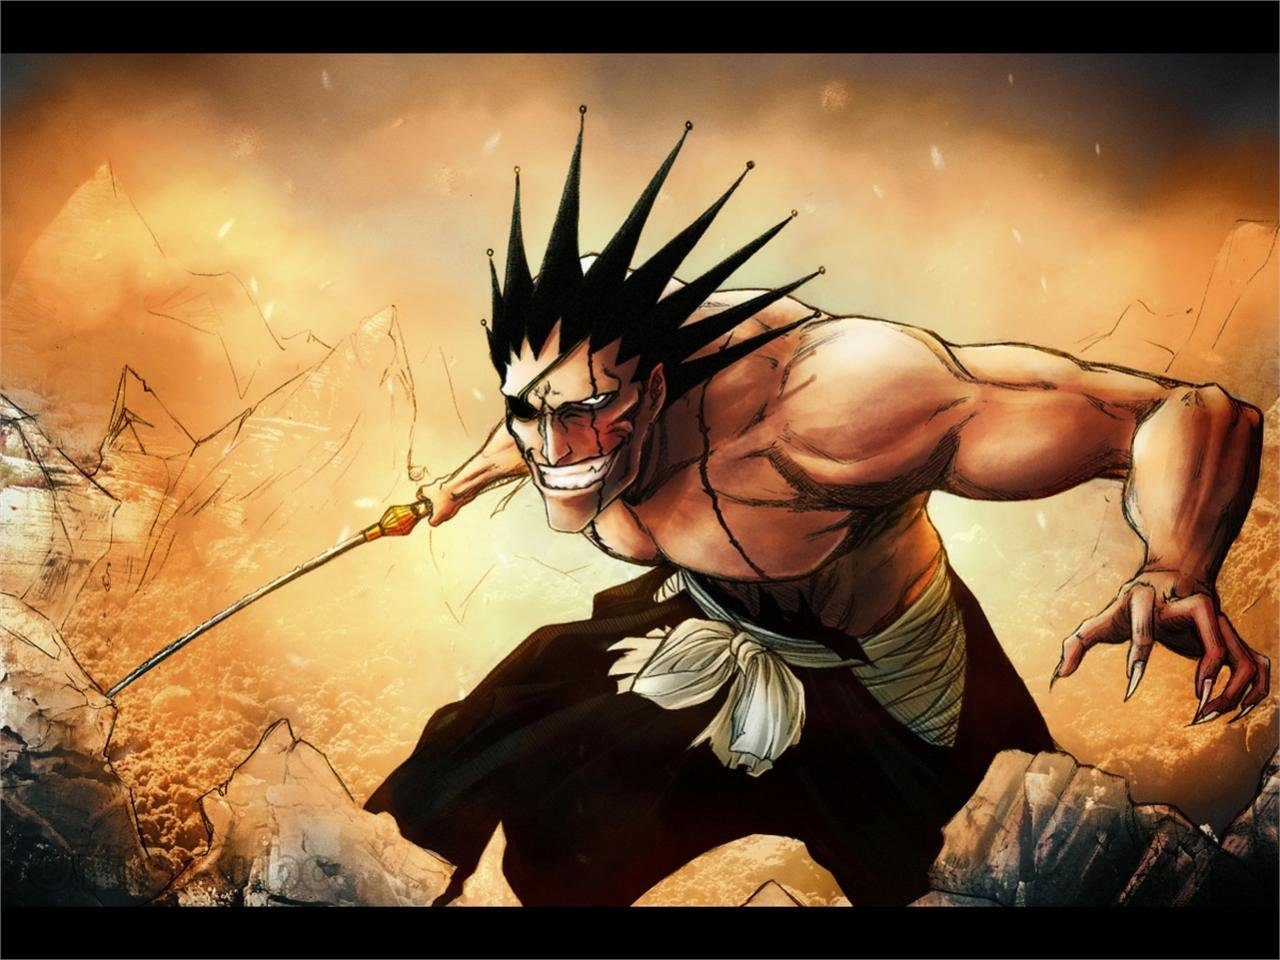 Awesome Kenpachi Zaraki free background ID:417053 for hd 1280x960 desktop